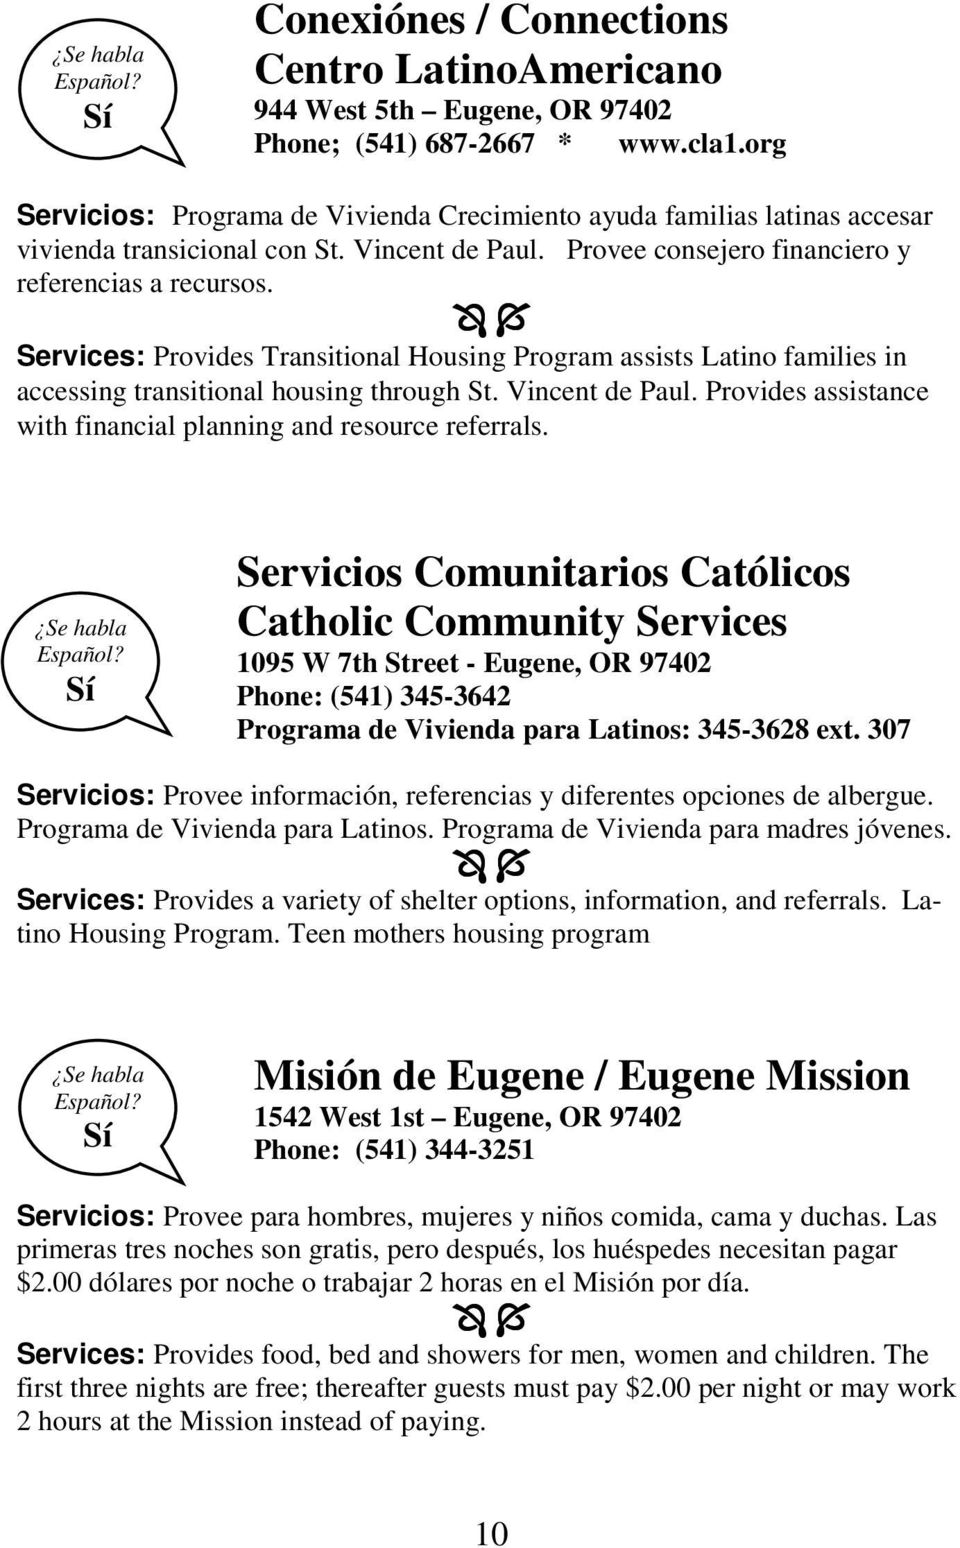 Services: Provides Transitional Housing Program assists Latino families in accessing transitional housing through St. Vincent de Paul.